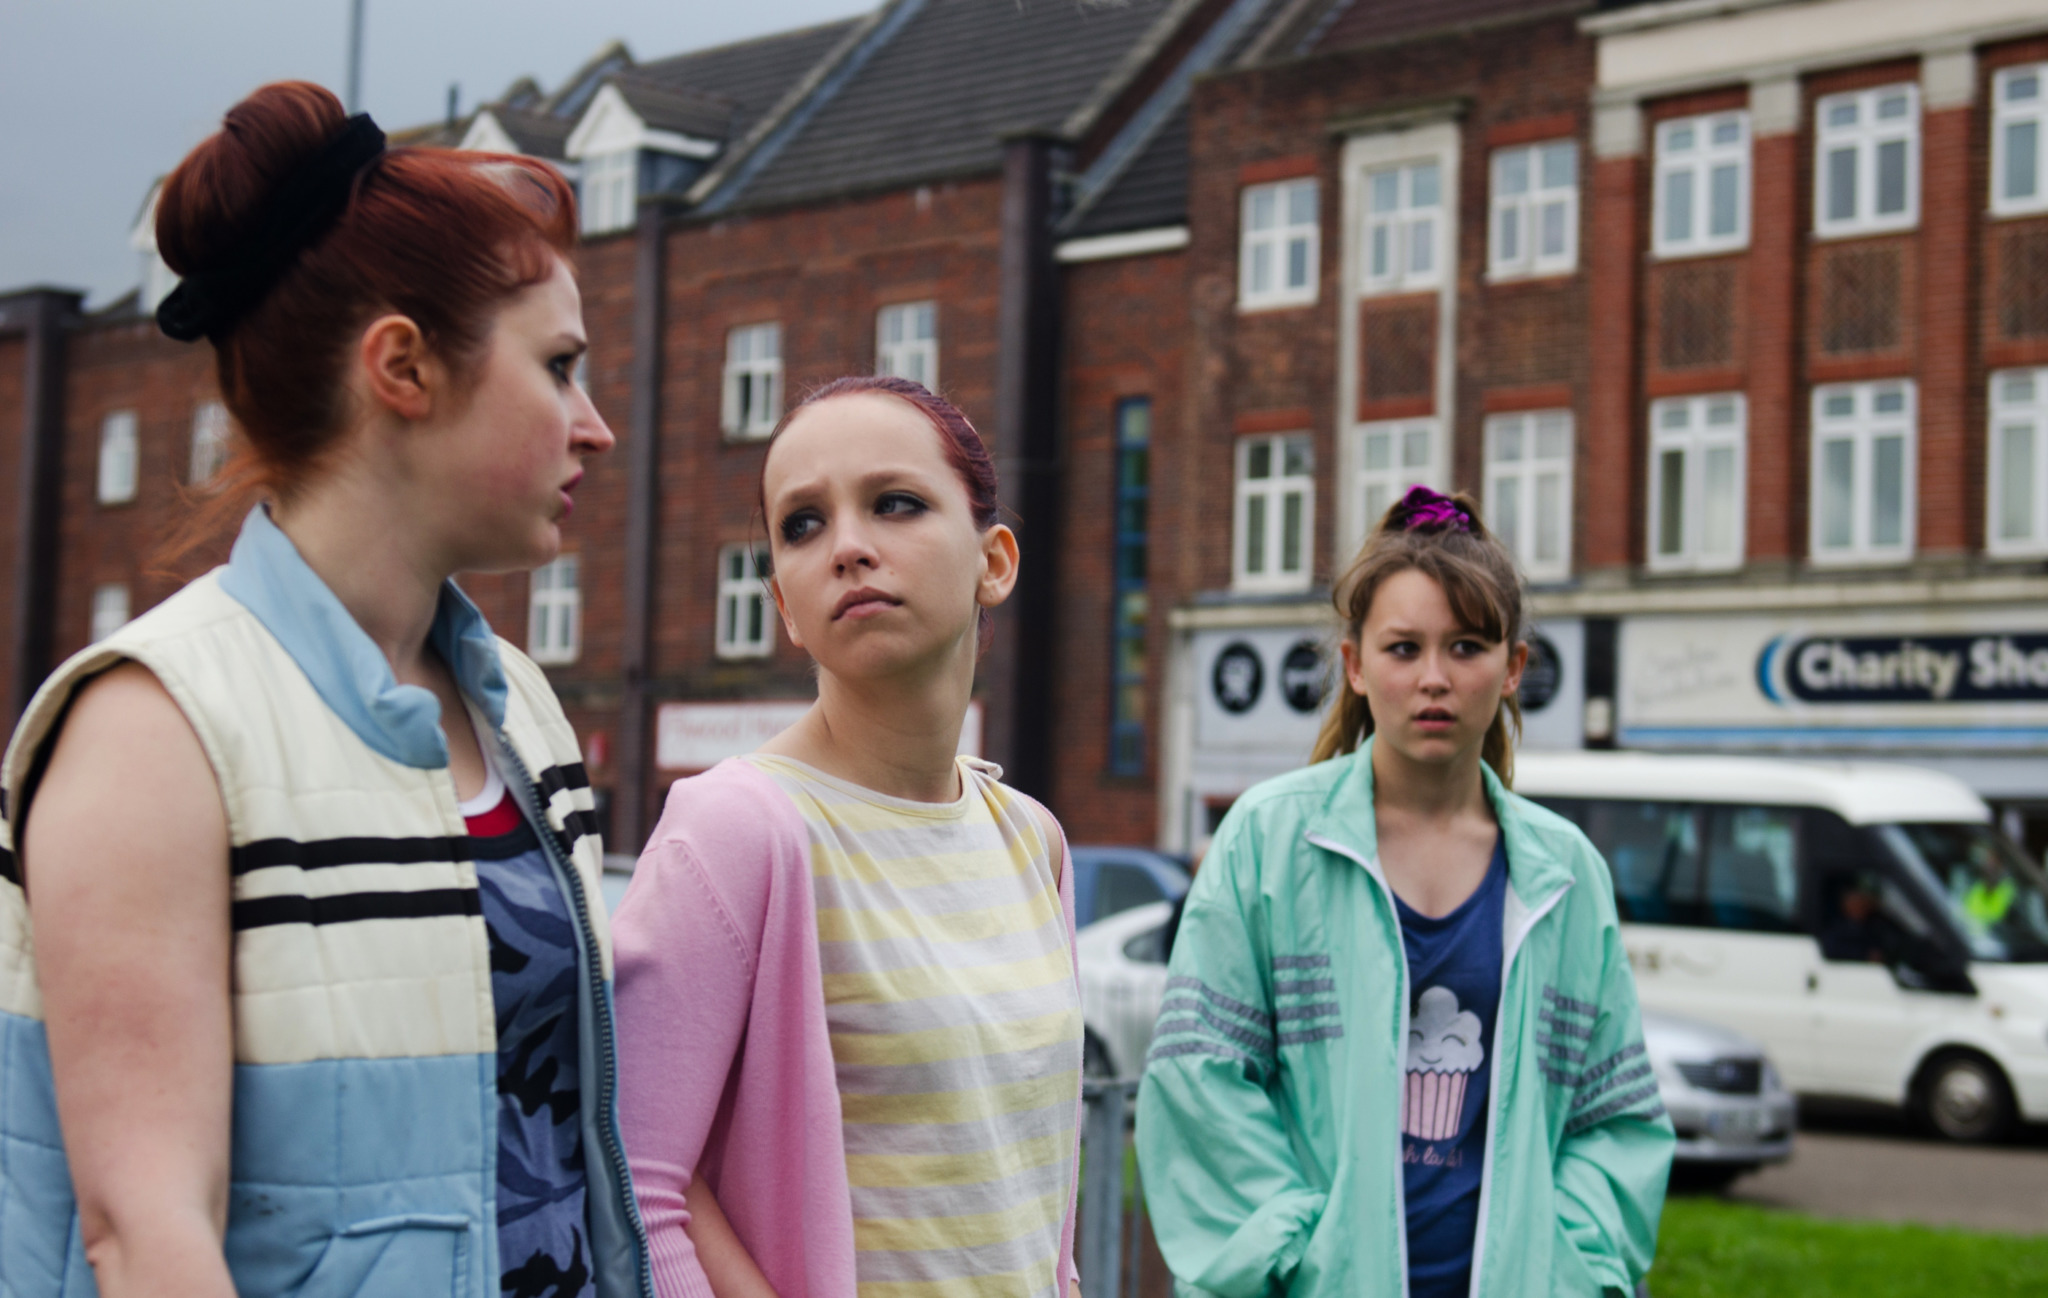 THREE GIRLS / Dir: Philippa Lowthorpe / BBC / 2016